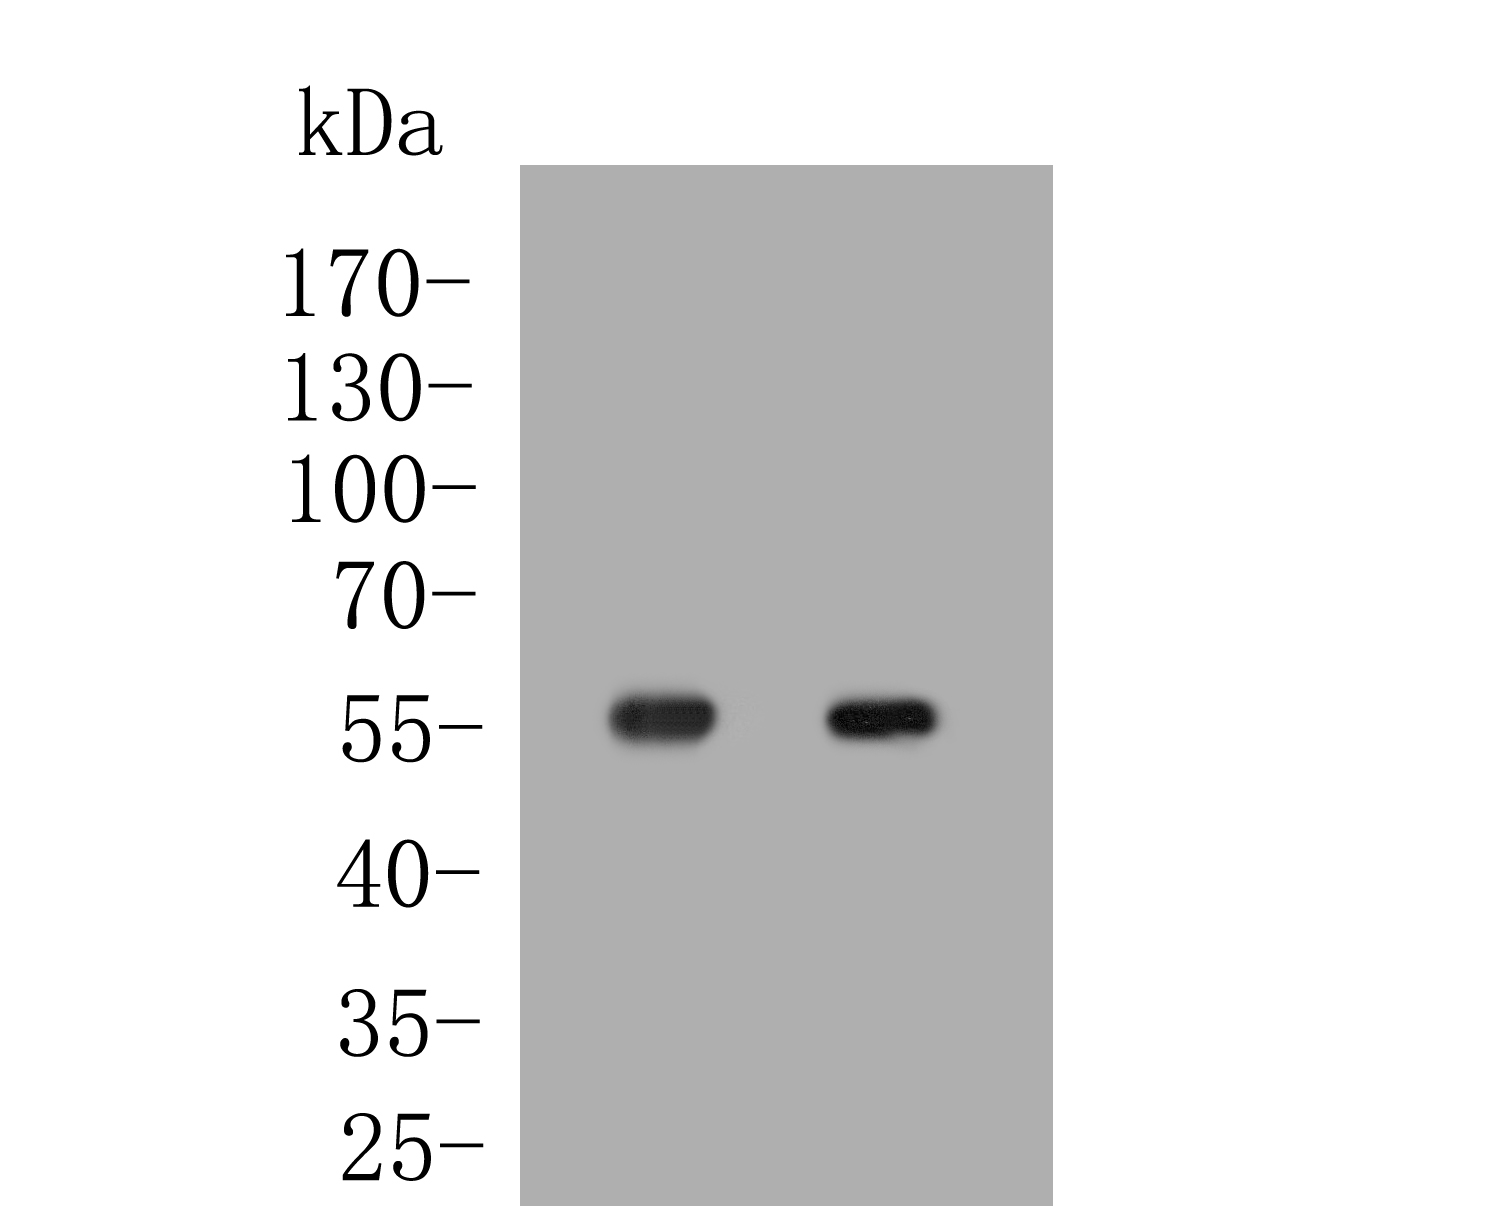 Western blot analysis of Perilipin-5 on different lysates. Proteins were transferred to a PVDF membrane and blocked with 5% BSA in PBS for 1 hour at room temperature. The primary antibody (ER1902-53, 1/500) was used in 5% BSA at room temperature for 2 hours. Goat Anti-Rabbit IgG - HRP Secondary Antibody (HA1001) at 1:5,000 dilution was used for 1 hour at room temperature.<br />  Positive control: <br />  Lane 1: Human liver tissue lysate<br />  Lane 2: Human marrow tissue lysate